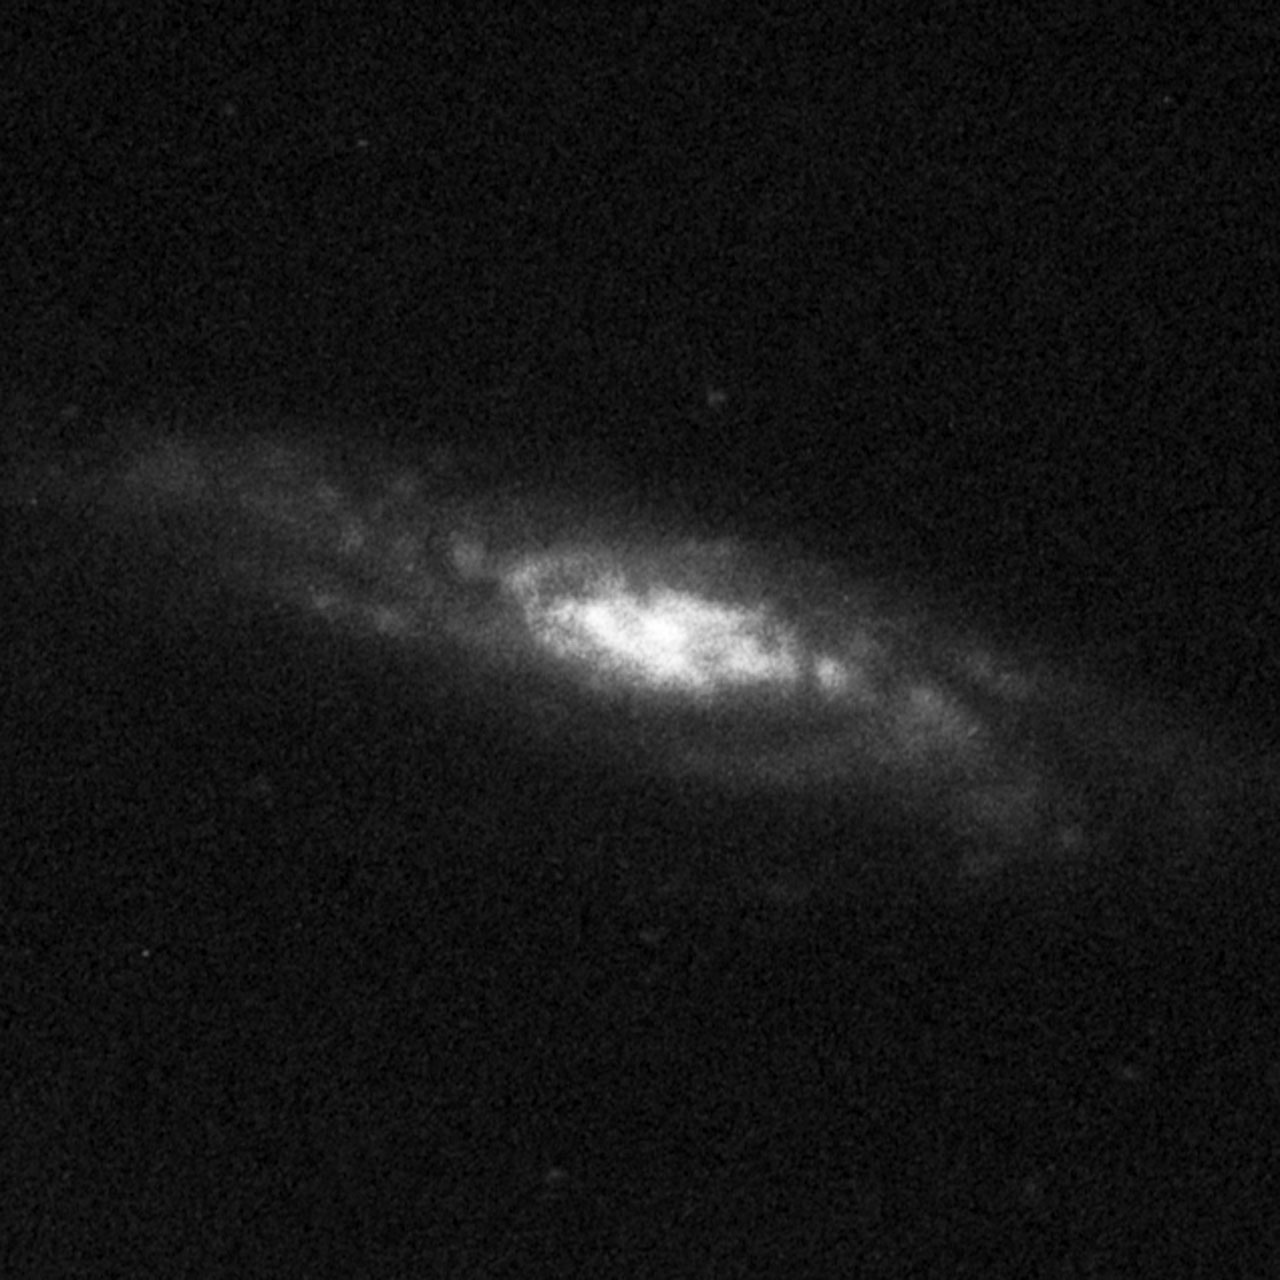 Central Bulges of Spiral Galaxies - NGC 7537 (Ground-Based View)